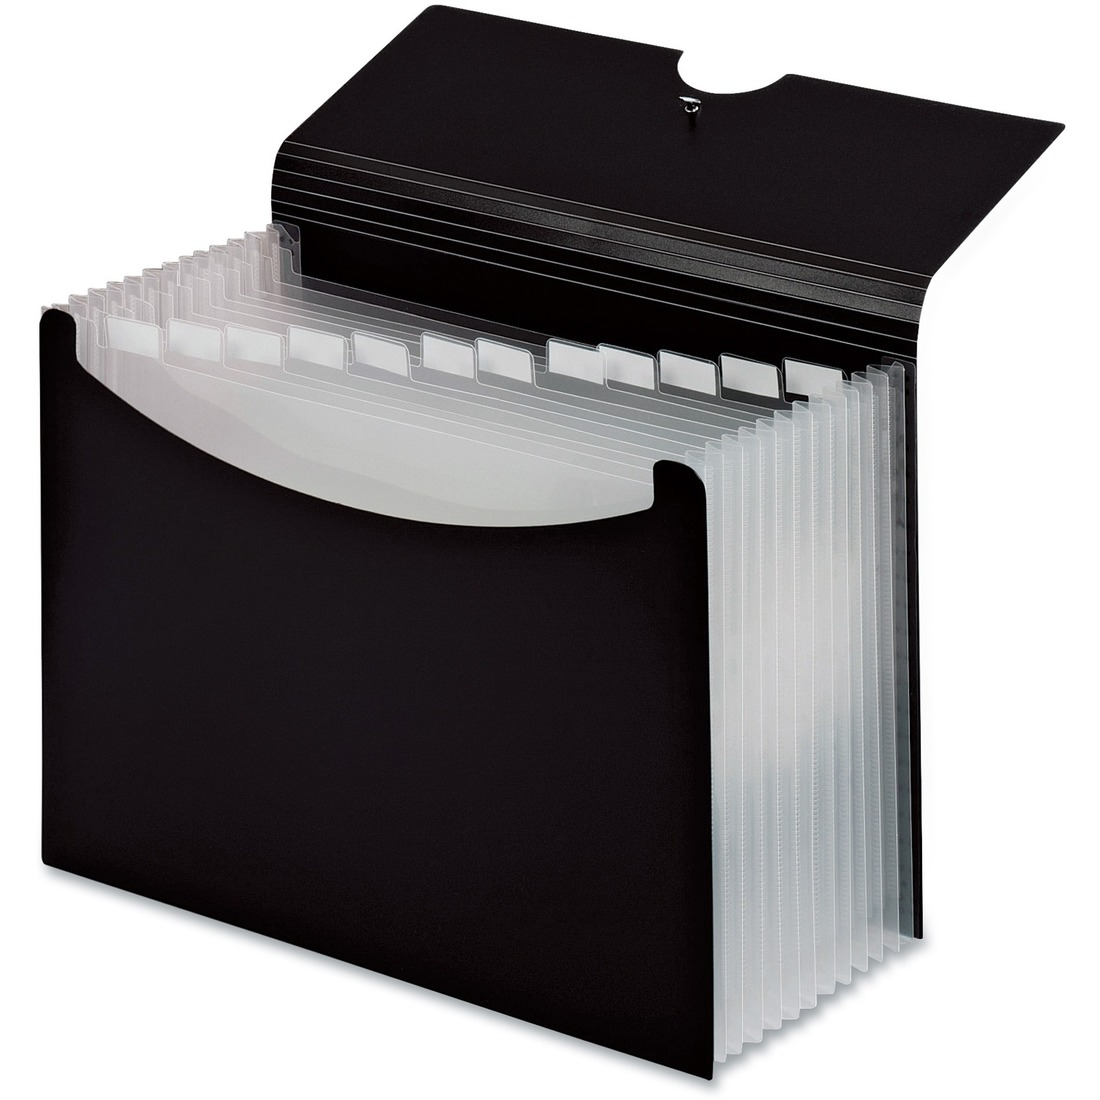 Pendaflex Second Nature Expanding Multi-Pocket Letter-Size Files